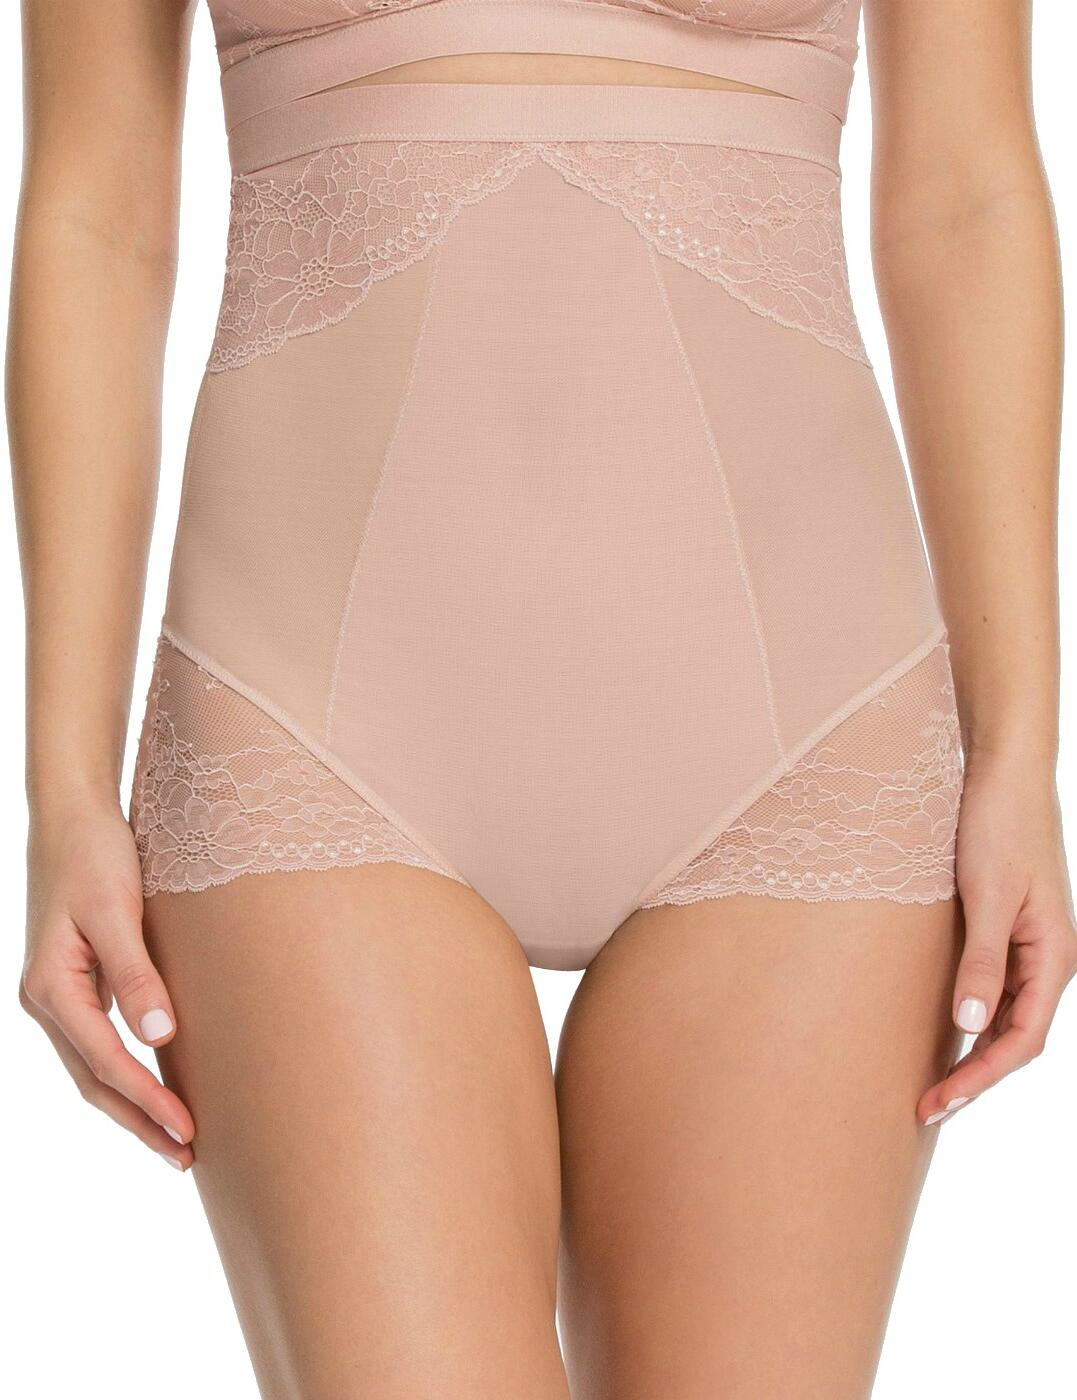 10121R Spanx Spotlight On Lace High Waist Brief - 10121R Vintage Rose